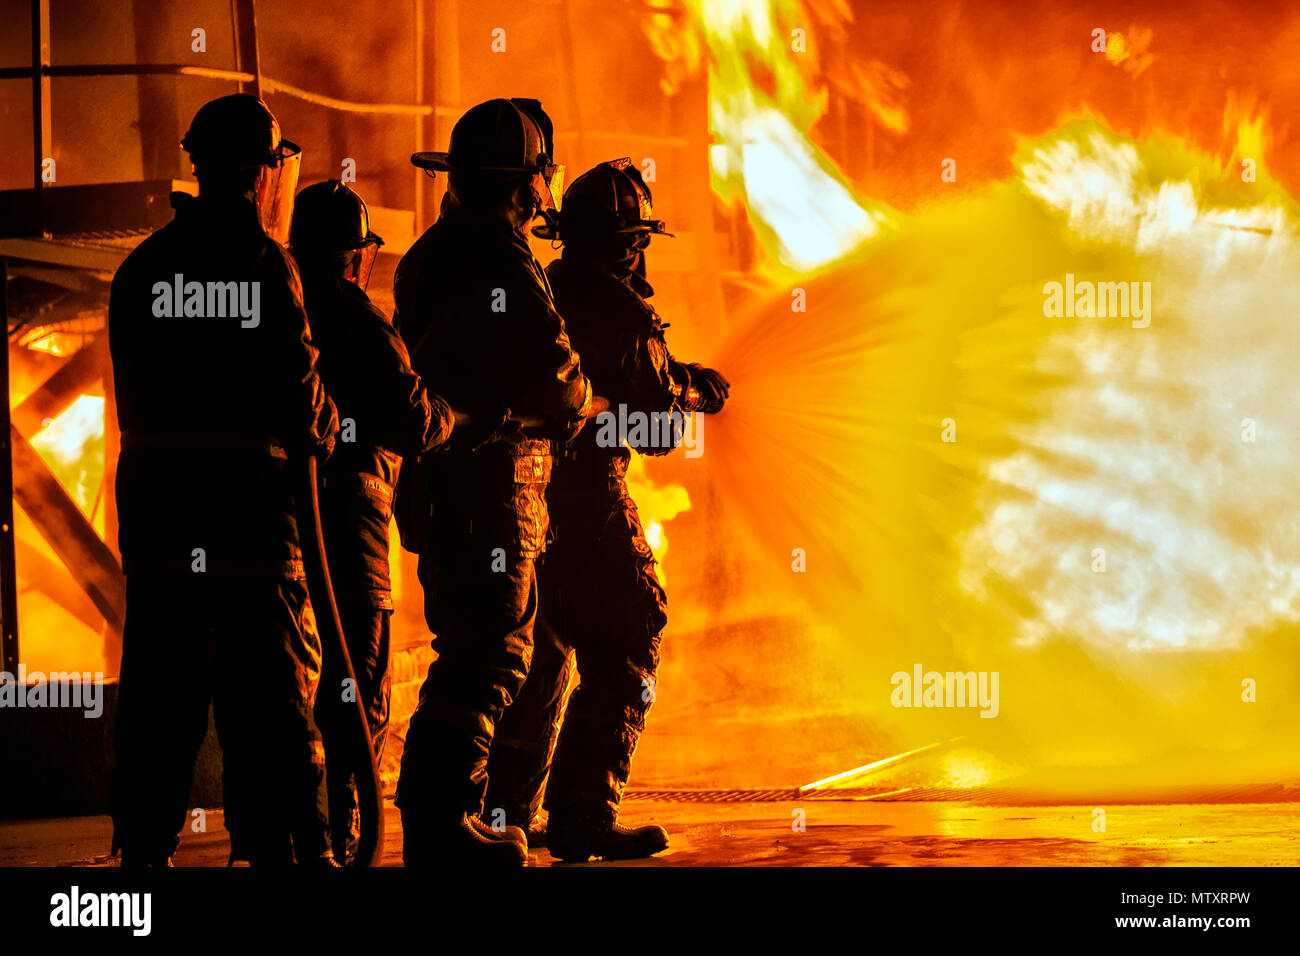 JOHANNESBURG, SOUTH AFRICA - MAY, 2018 Firefighters spraying down fire during firefighting training exercise Stock Photo